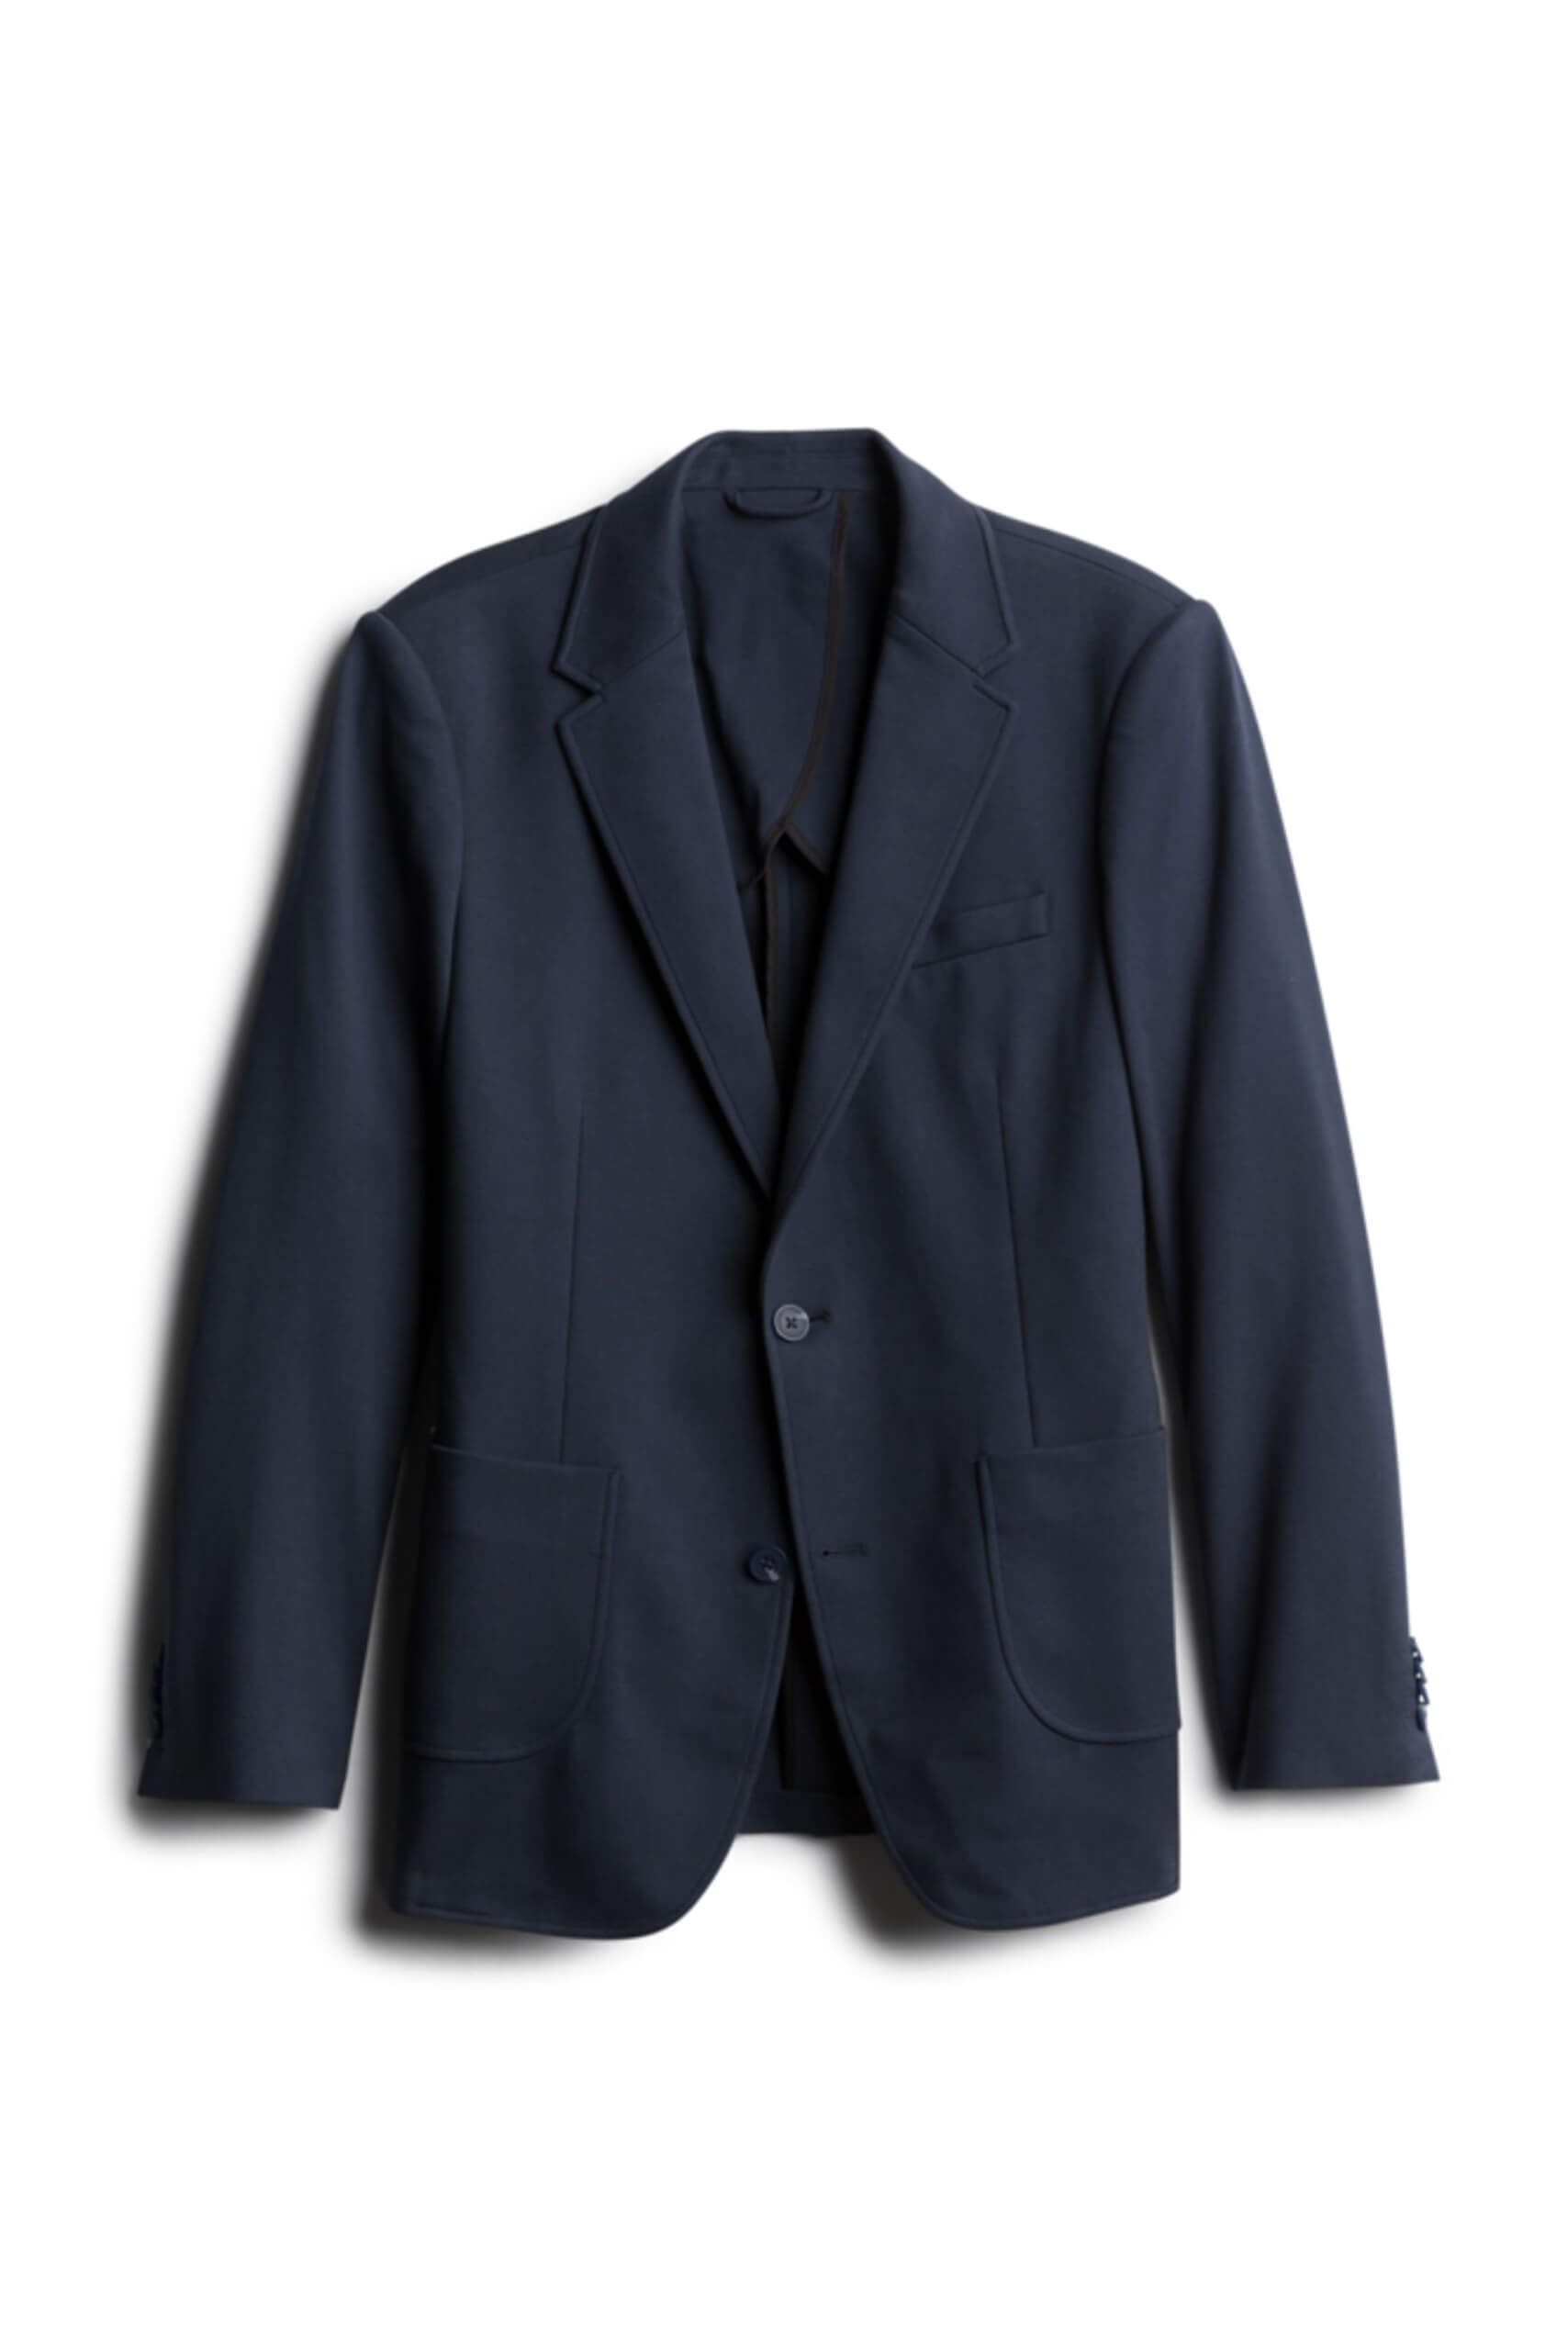 Stitch Fix Men's navy knit blazer.